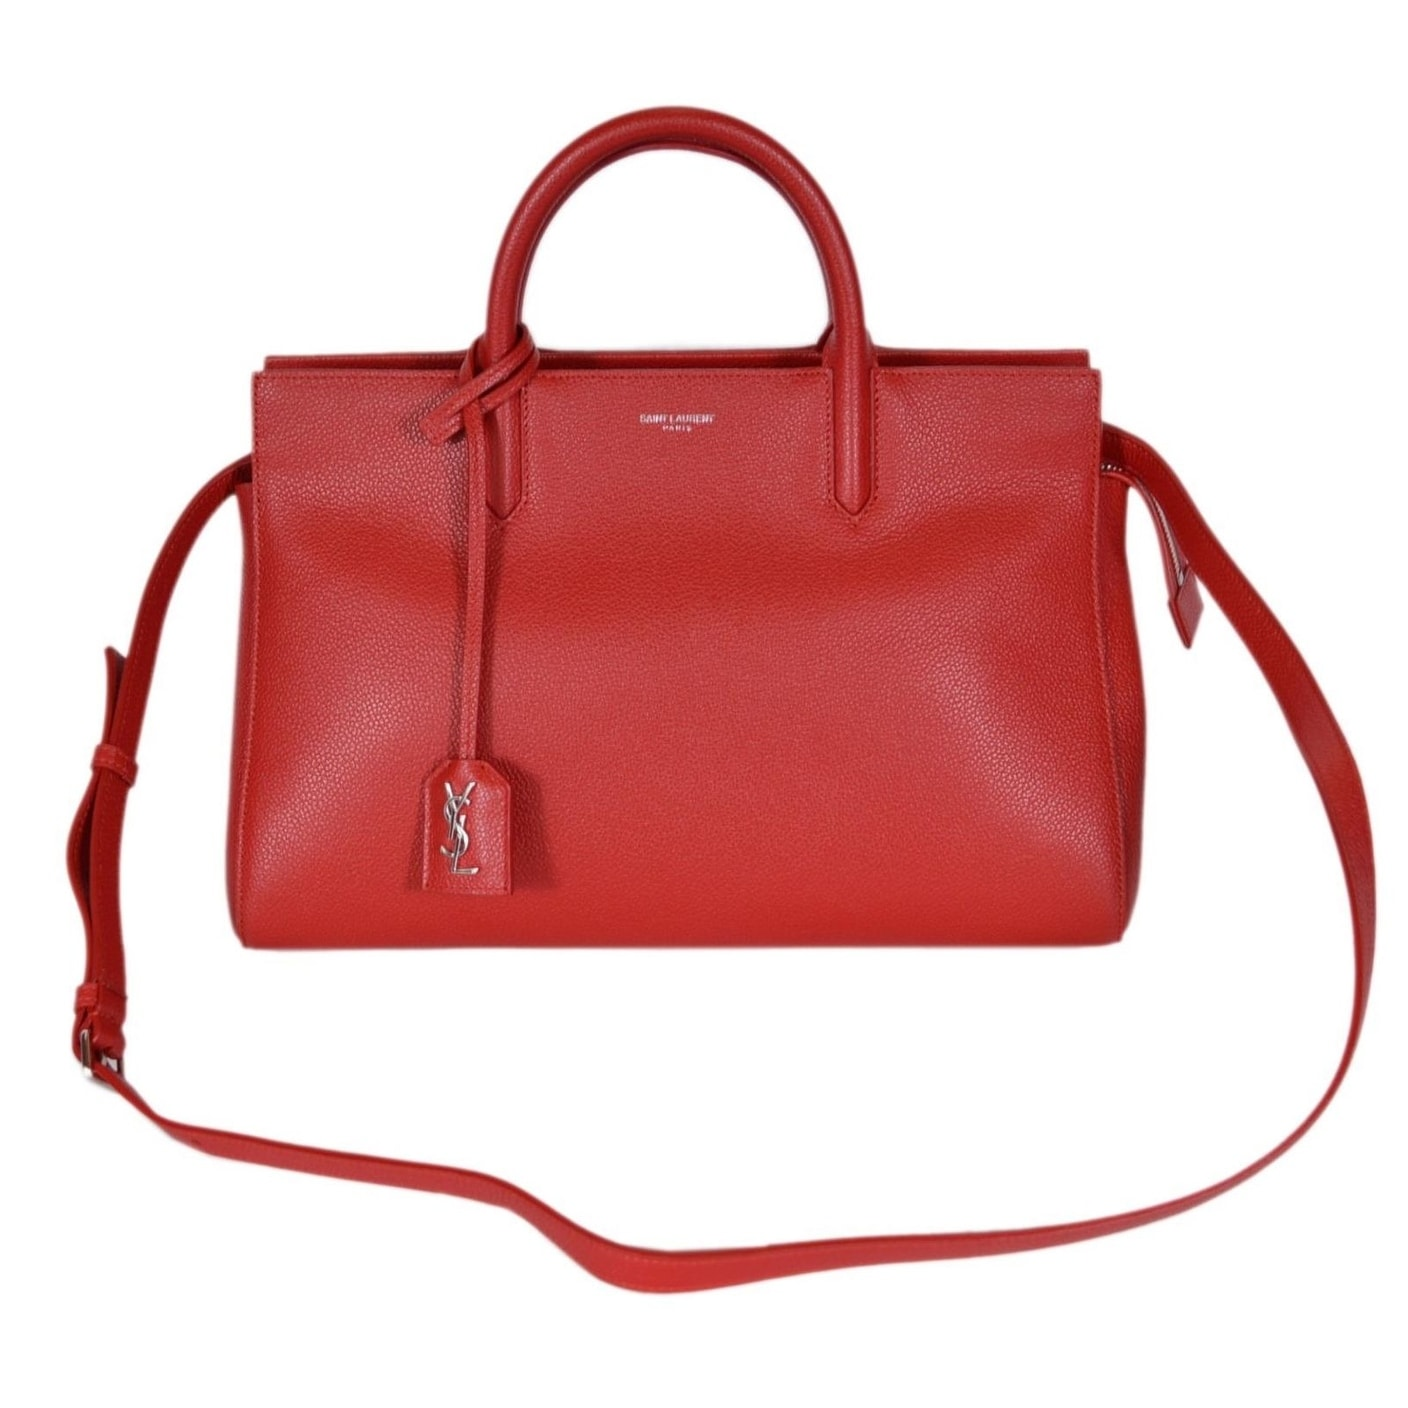 Saint Laurent YSL 400413 Small Red Leather Cabas Rive Gauche Purse Handbag 7bc100ae42b08